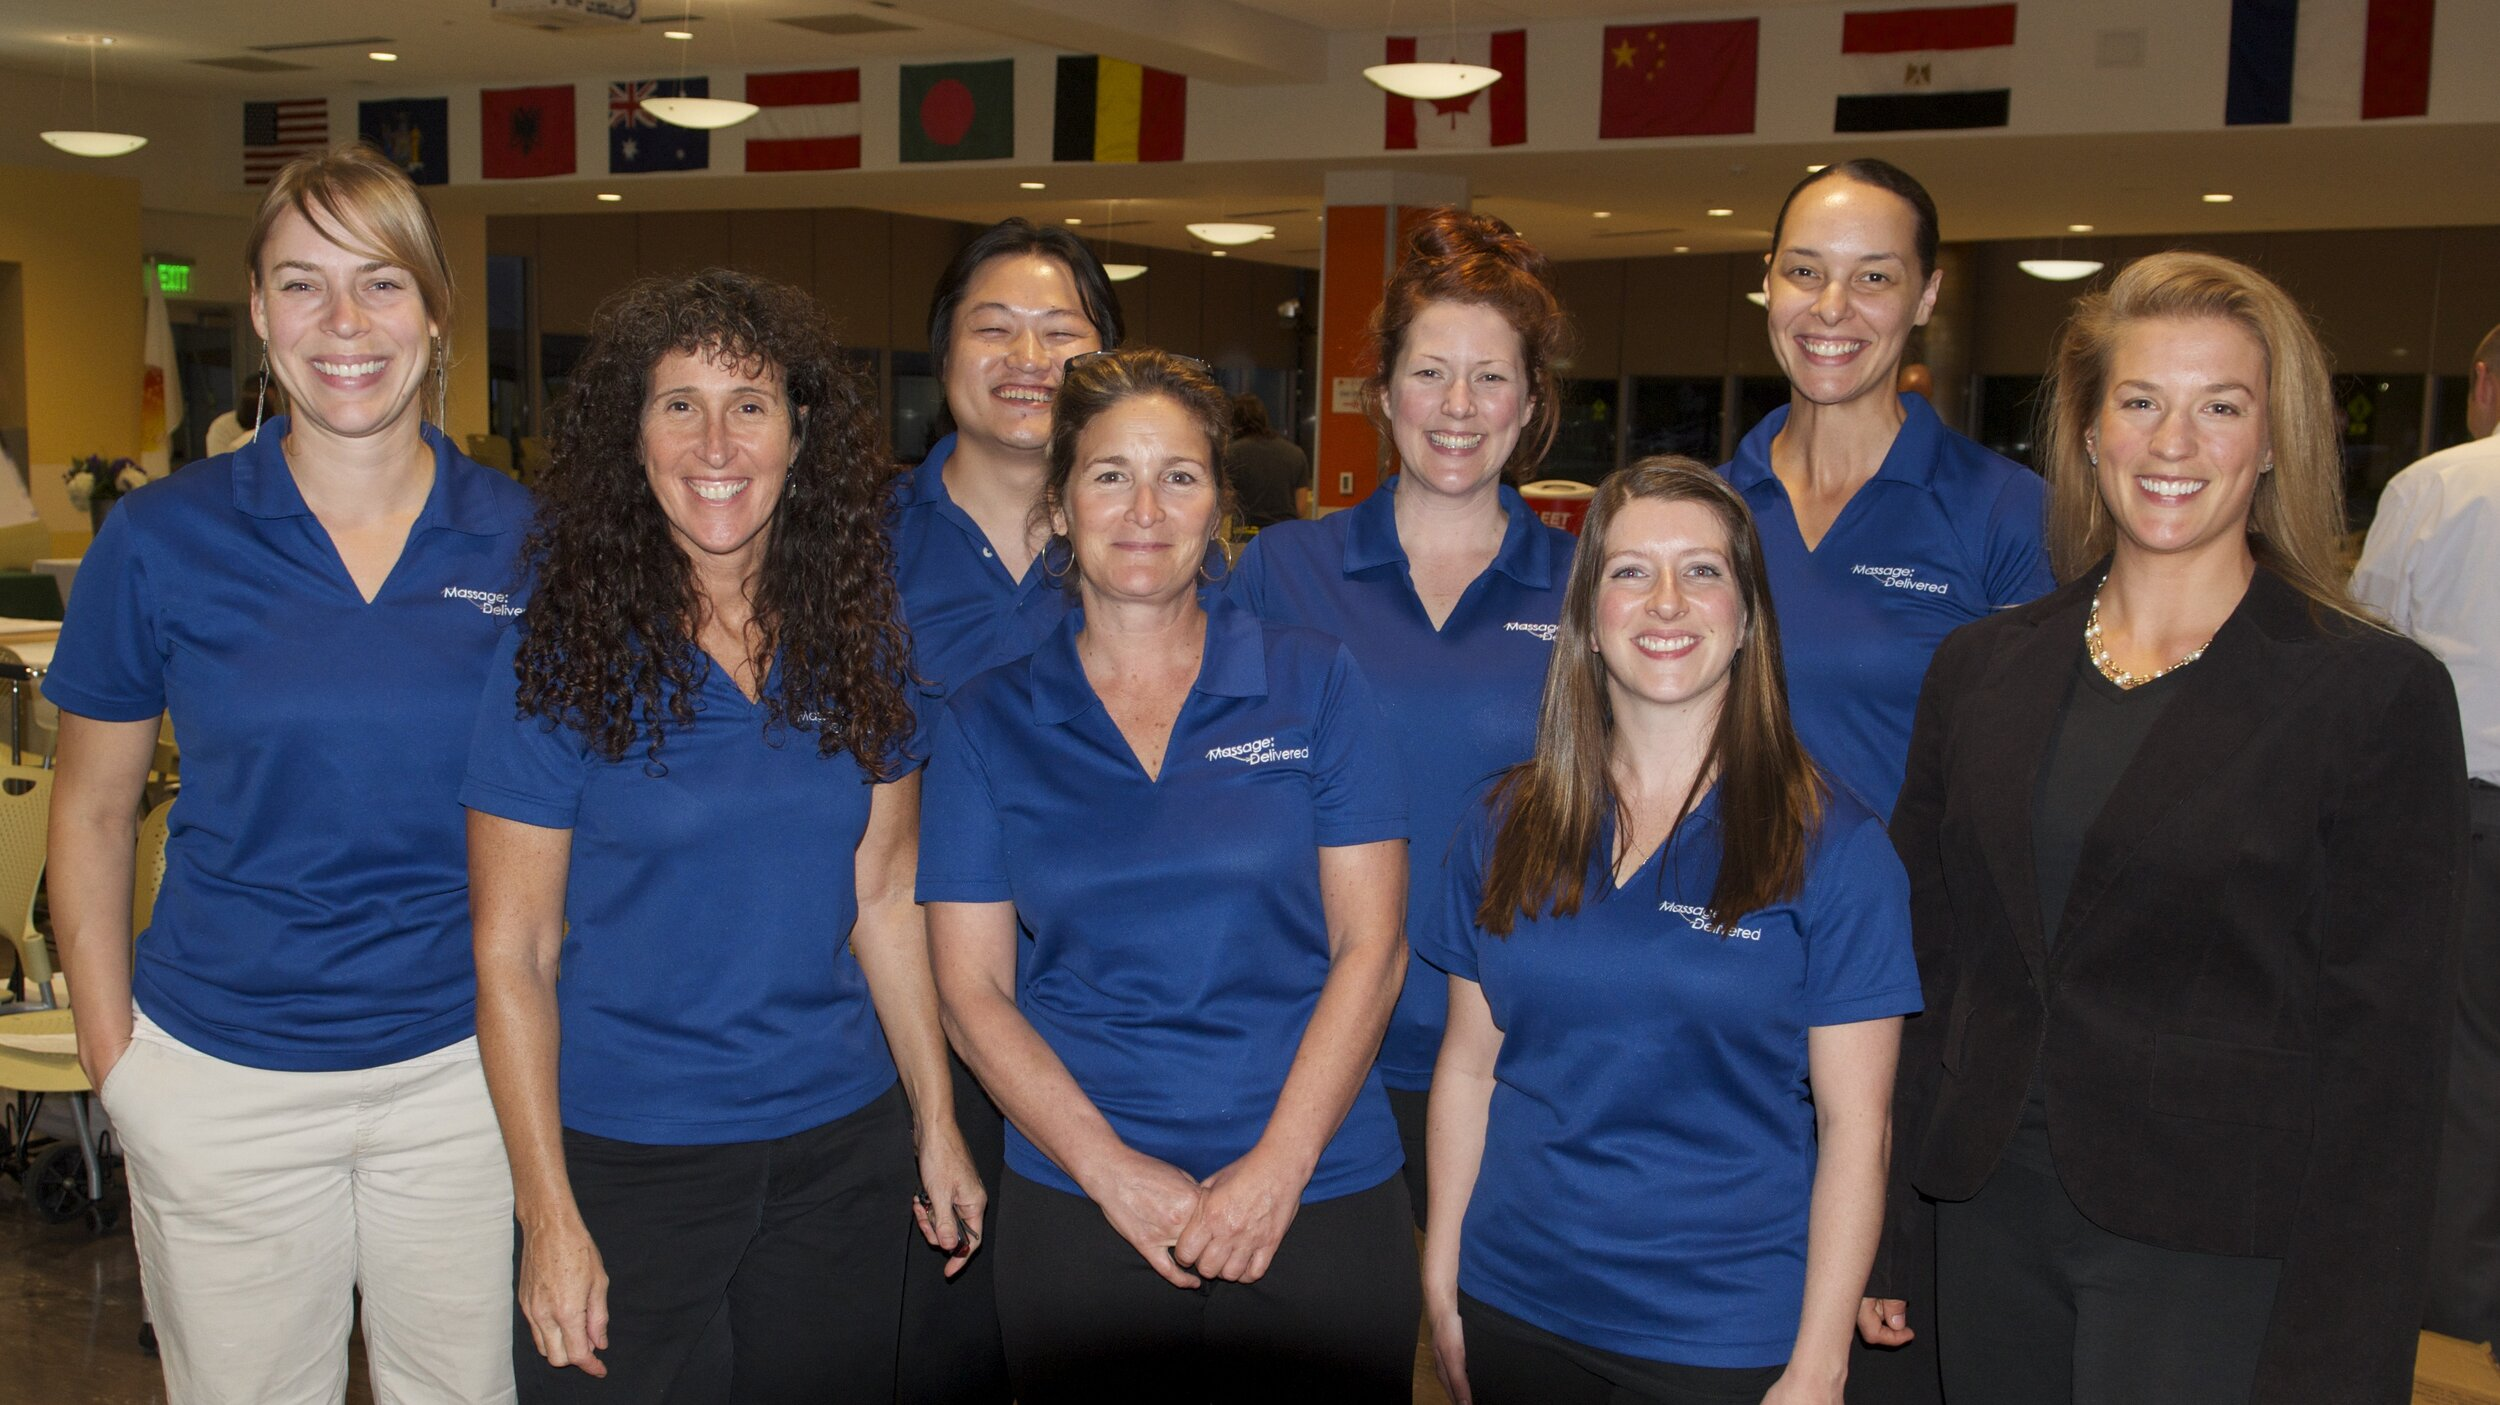 Massage: Delivered has a team of over 20 licensed massage professionals serving the Capital District and beyond.